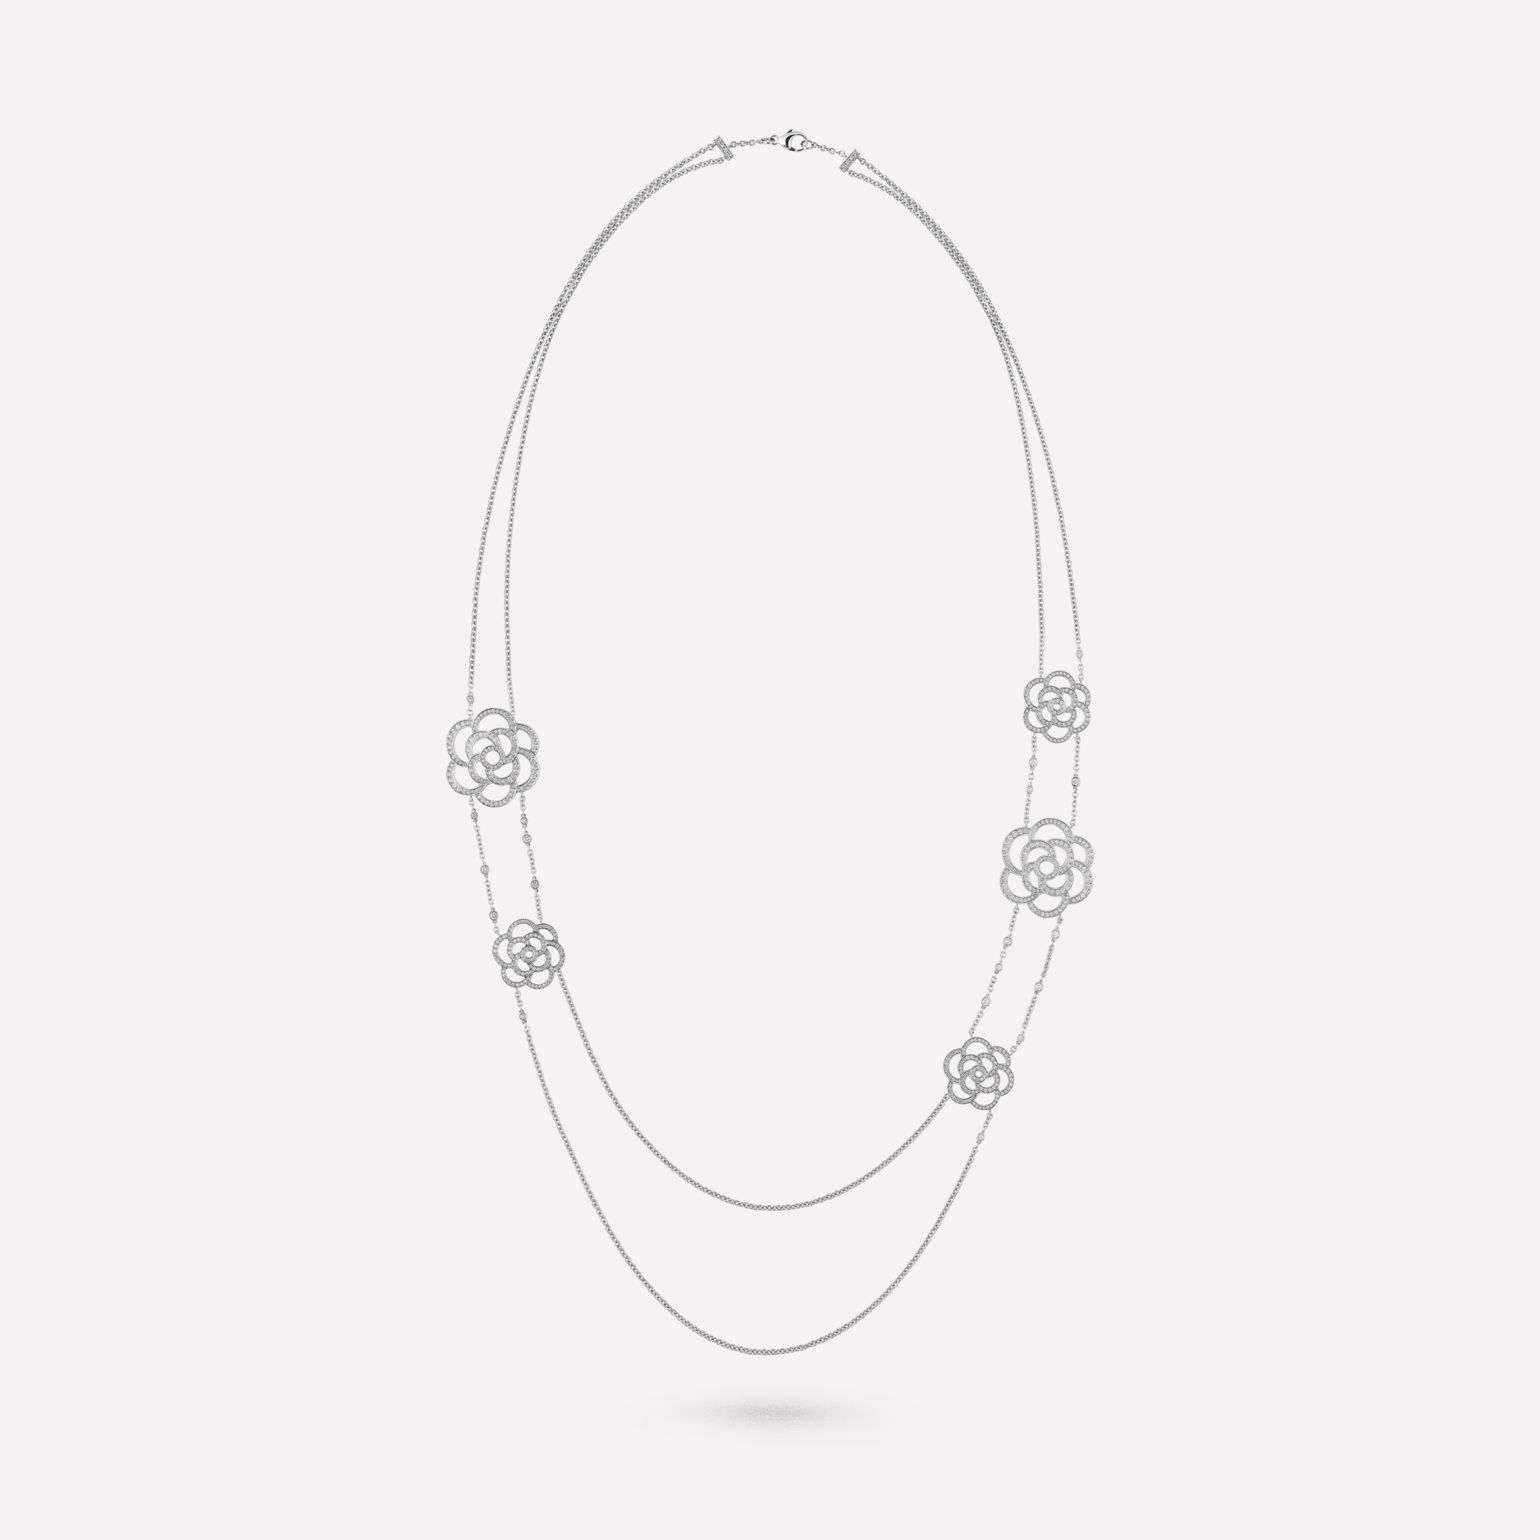 Camélia Necklace Camélia Ajouré sautoir in 18K white gold and diamonds